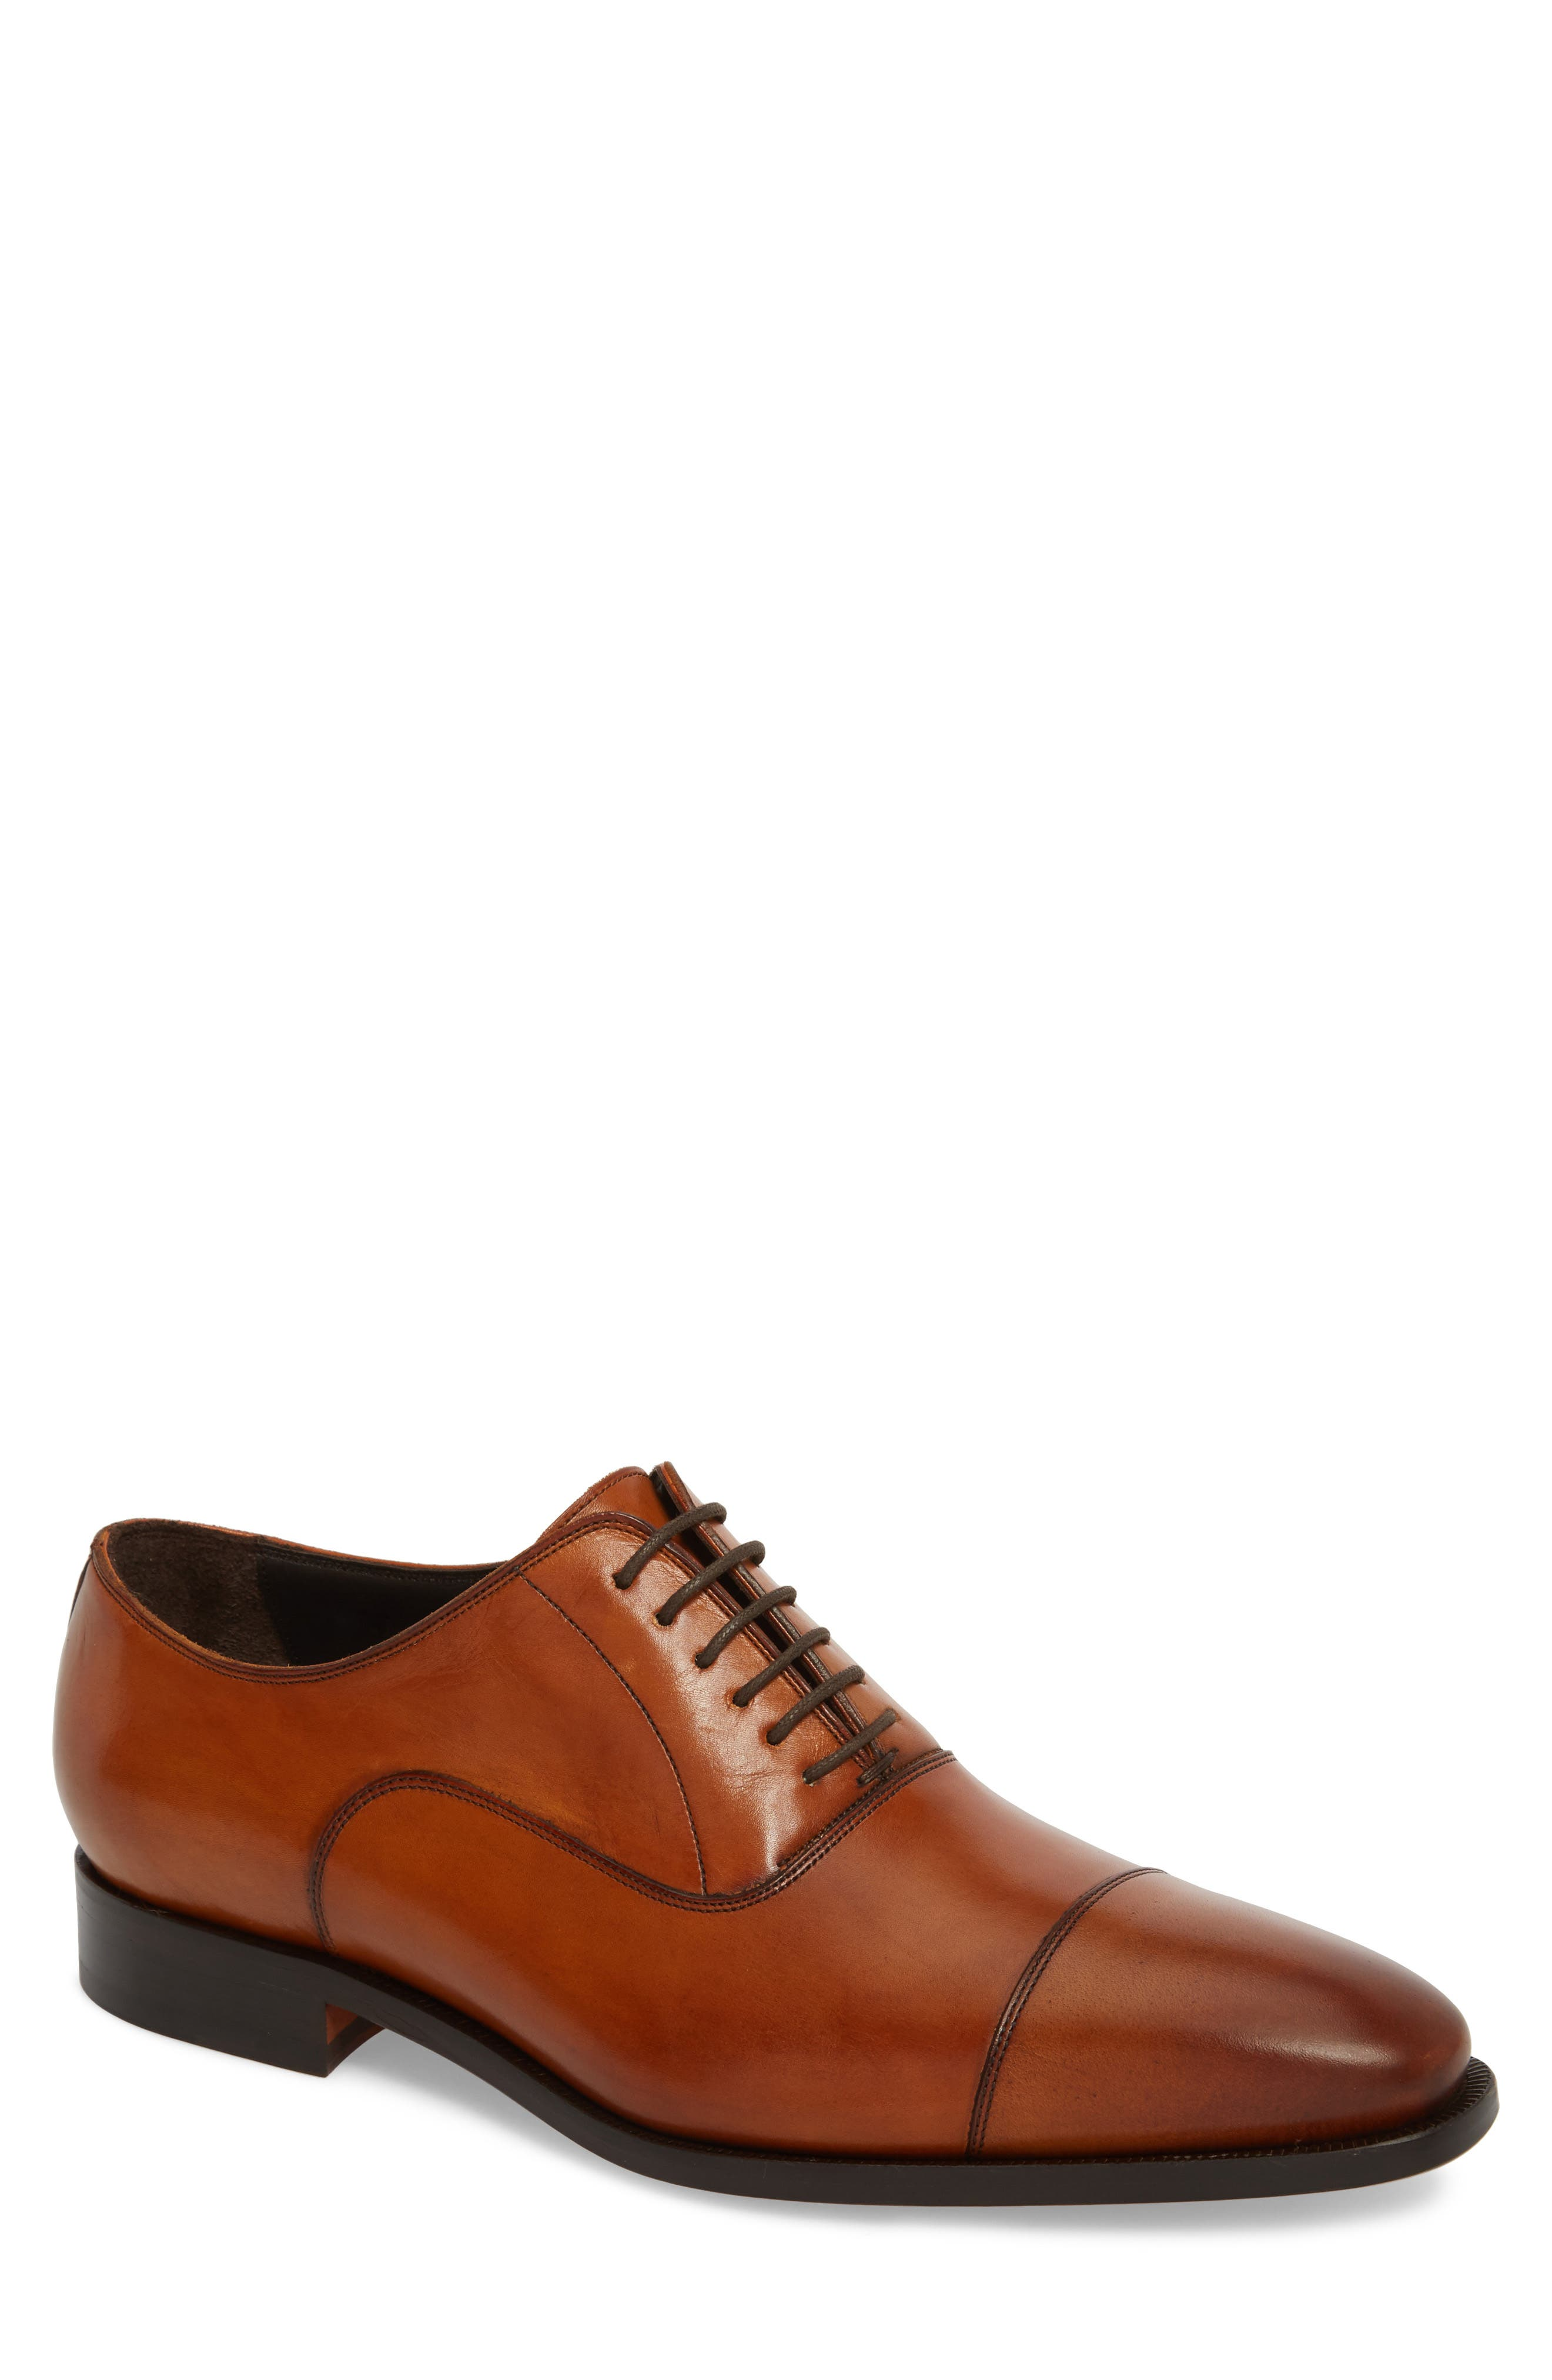 TO BOOT NEW YORK, Knoll Cap Toe Oxford, Main thumbnail 1, color, COGNAC LEATHER